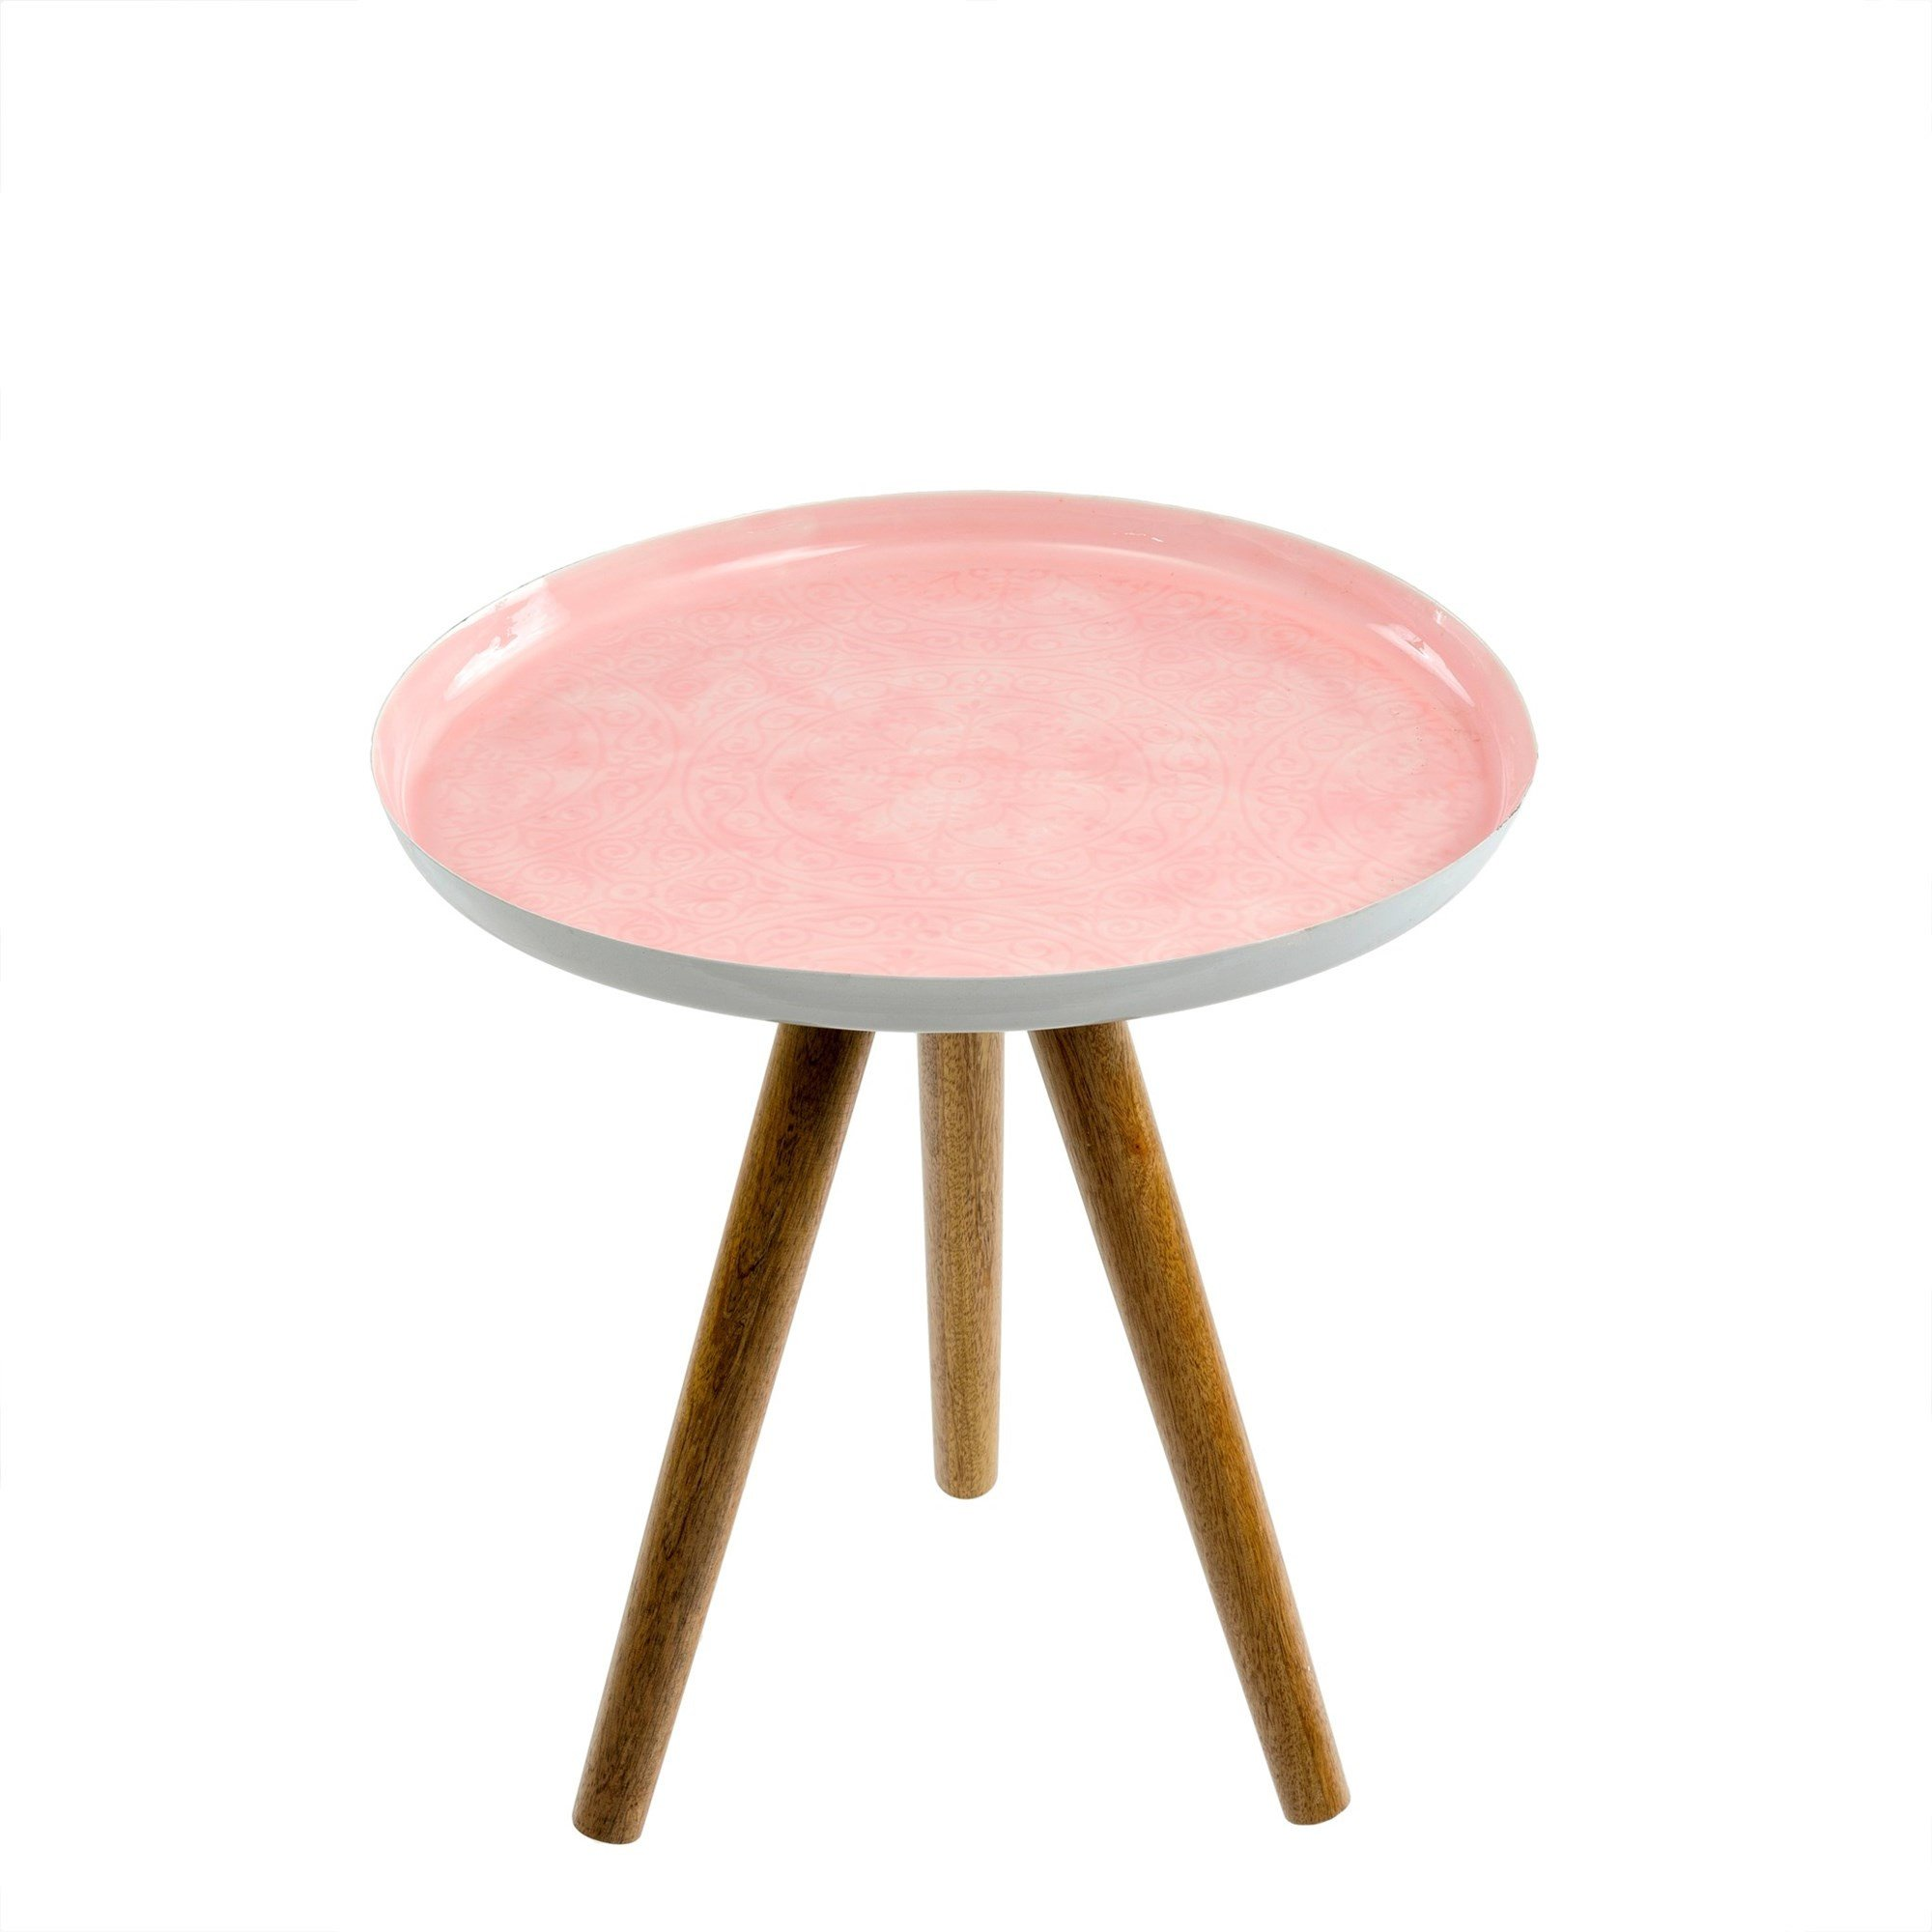 accent tables putti fine furnishings pink marble table ikea teton very small occasional corner for bedroom kitchen set light shower head bulb changer pole end round glass top